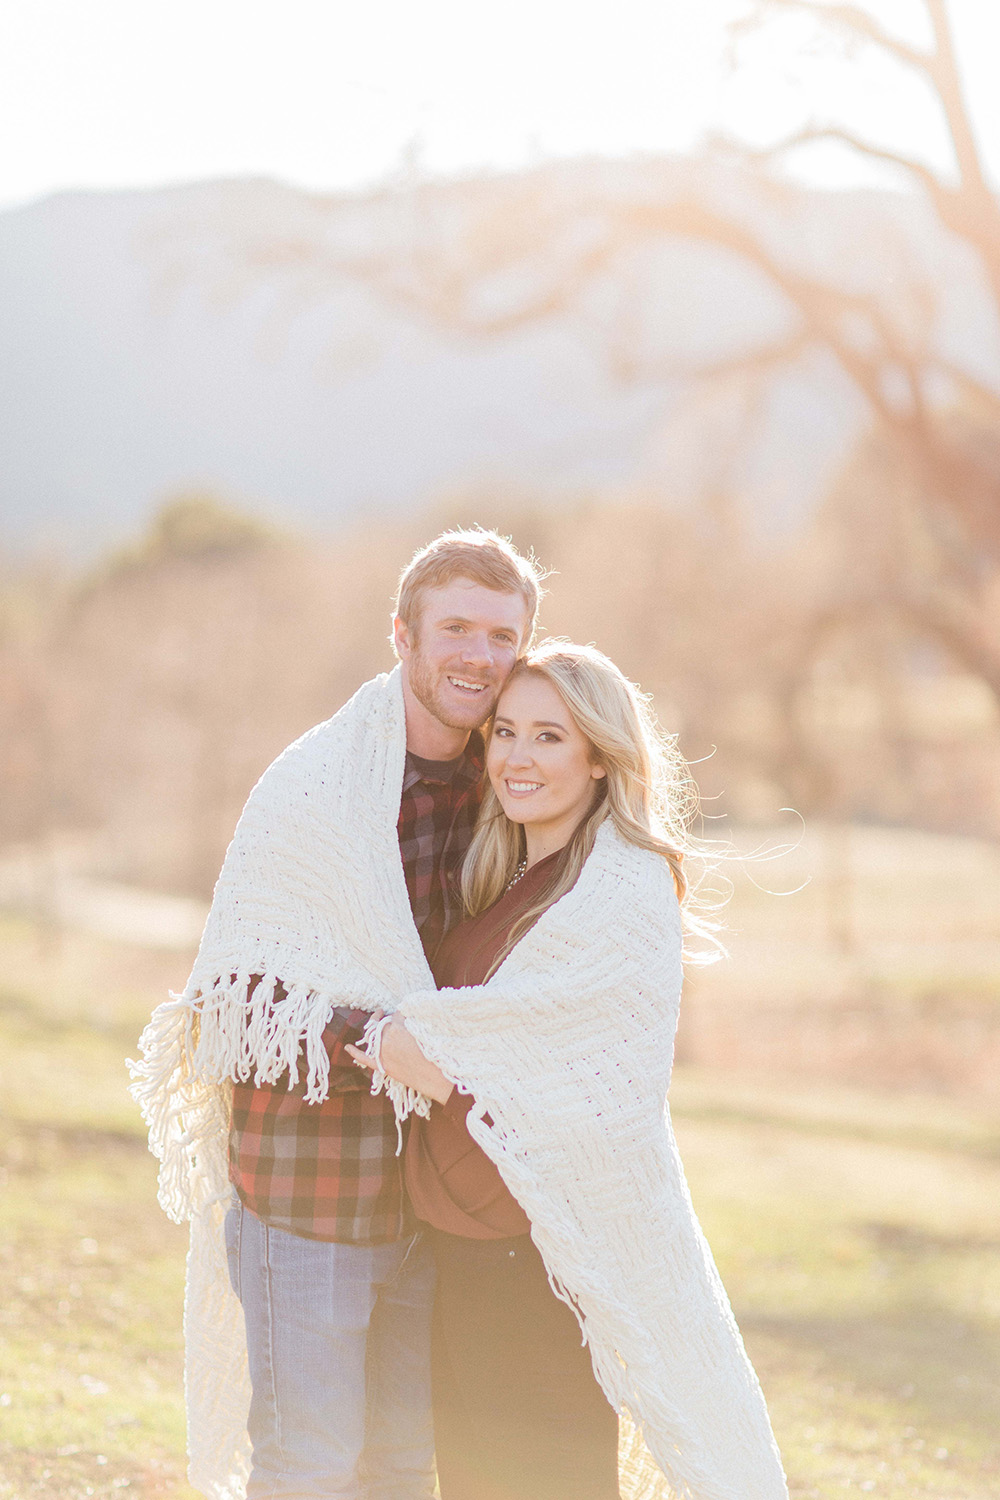 Kristyn Villars Photography-mariah lee engagement-15